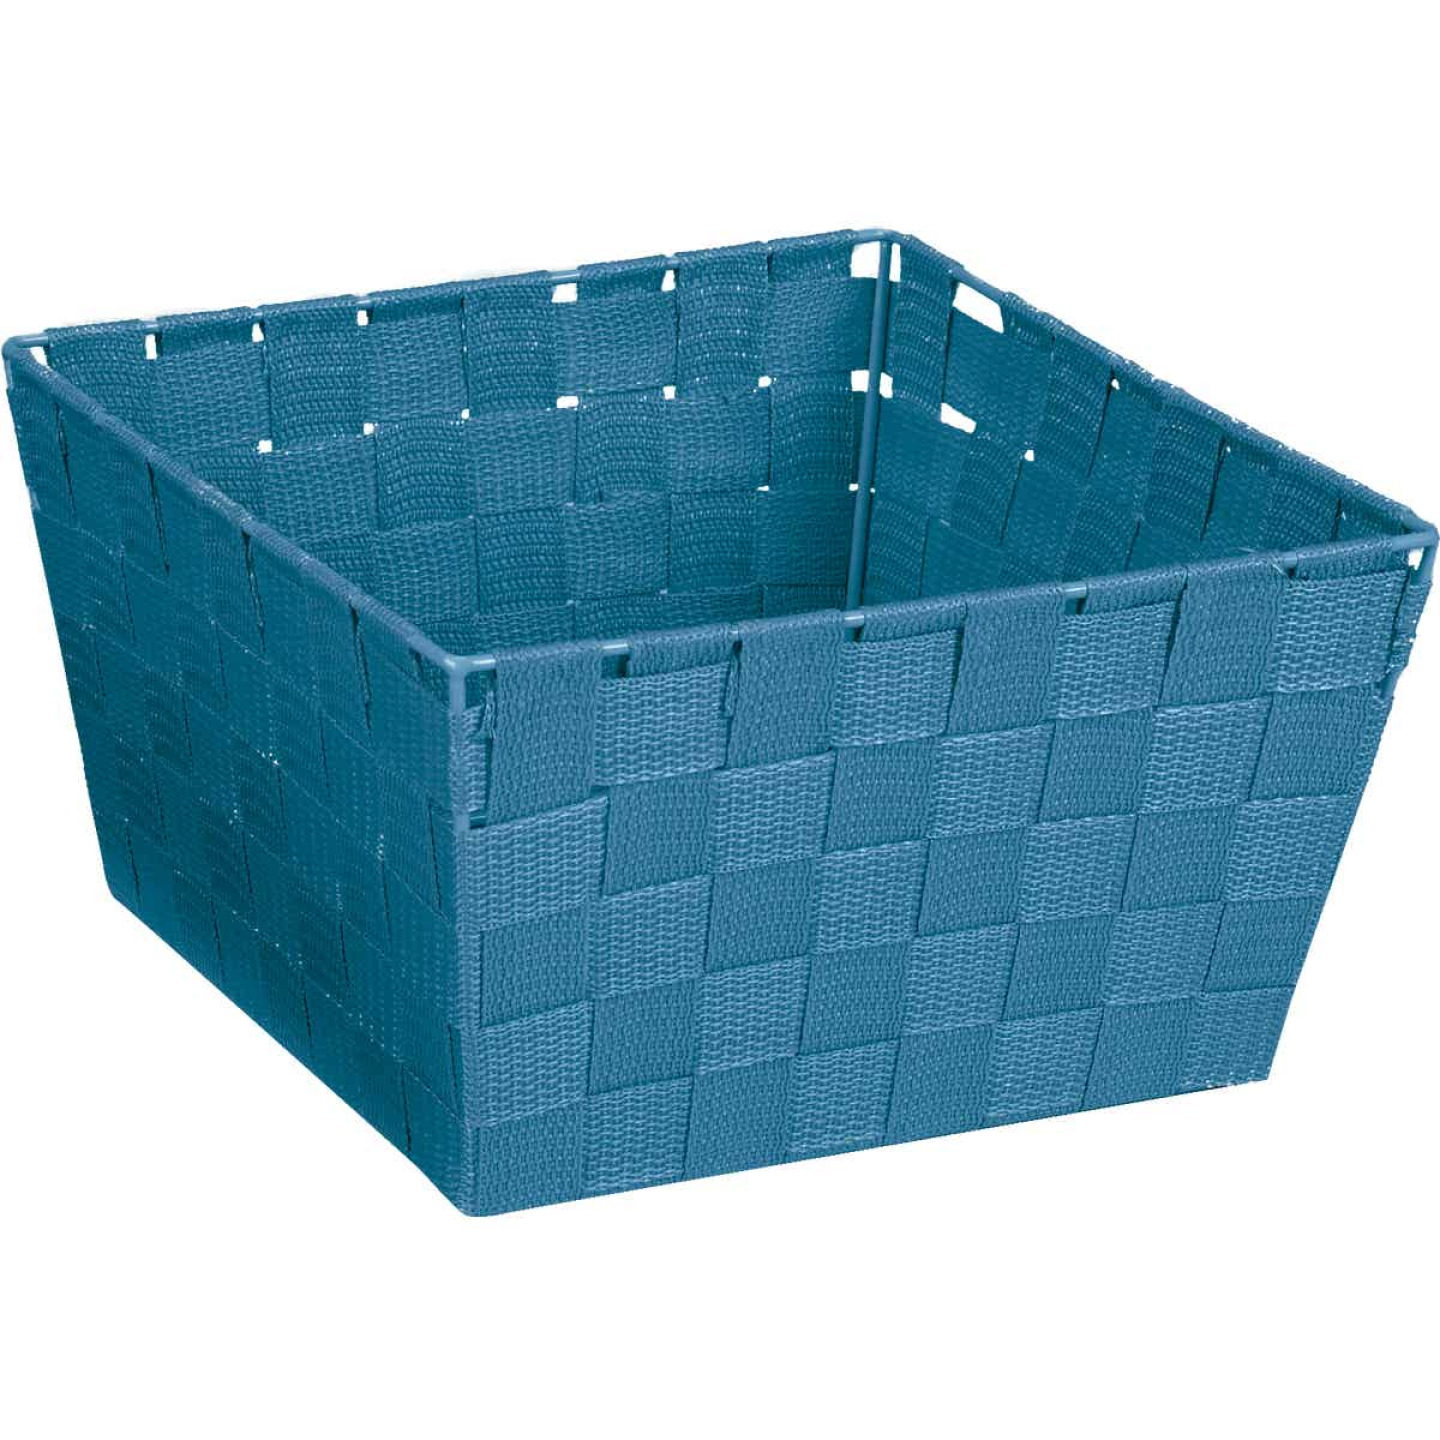 Home Impressions 9.75 In. x 5.5 In. H. Woven Storage Basket, Blue Image 1